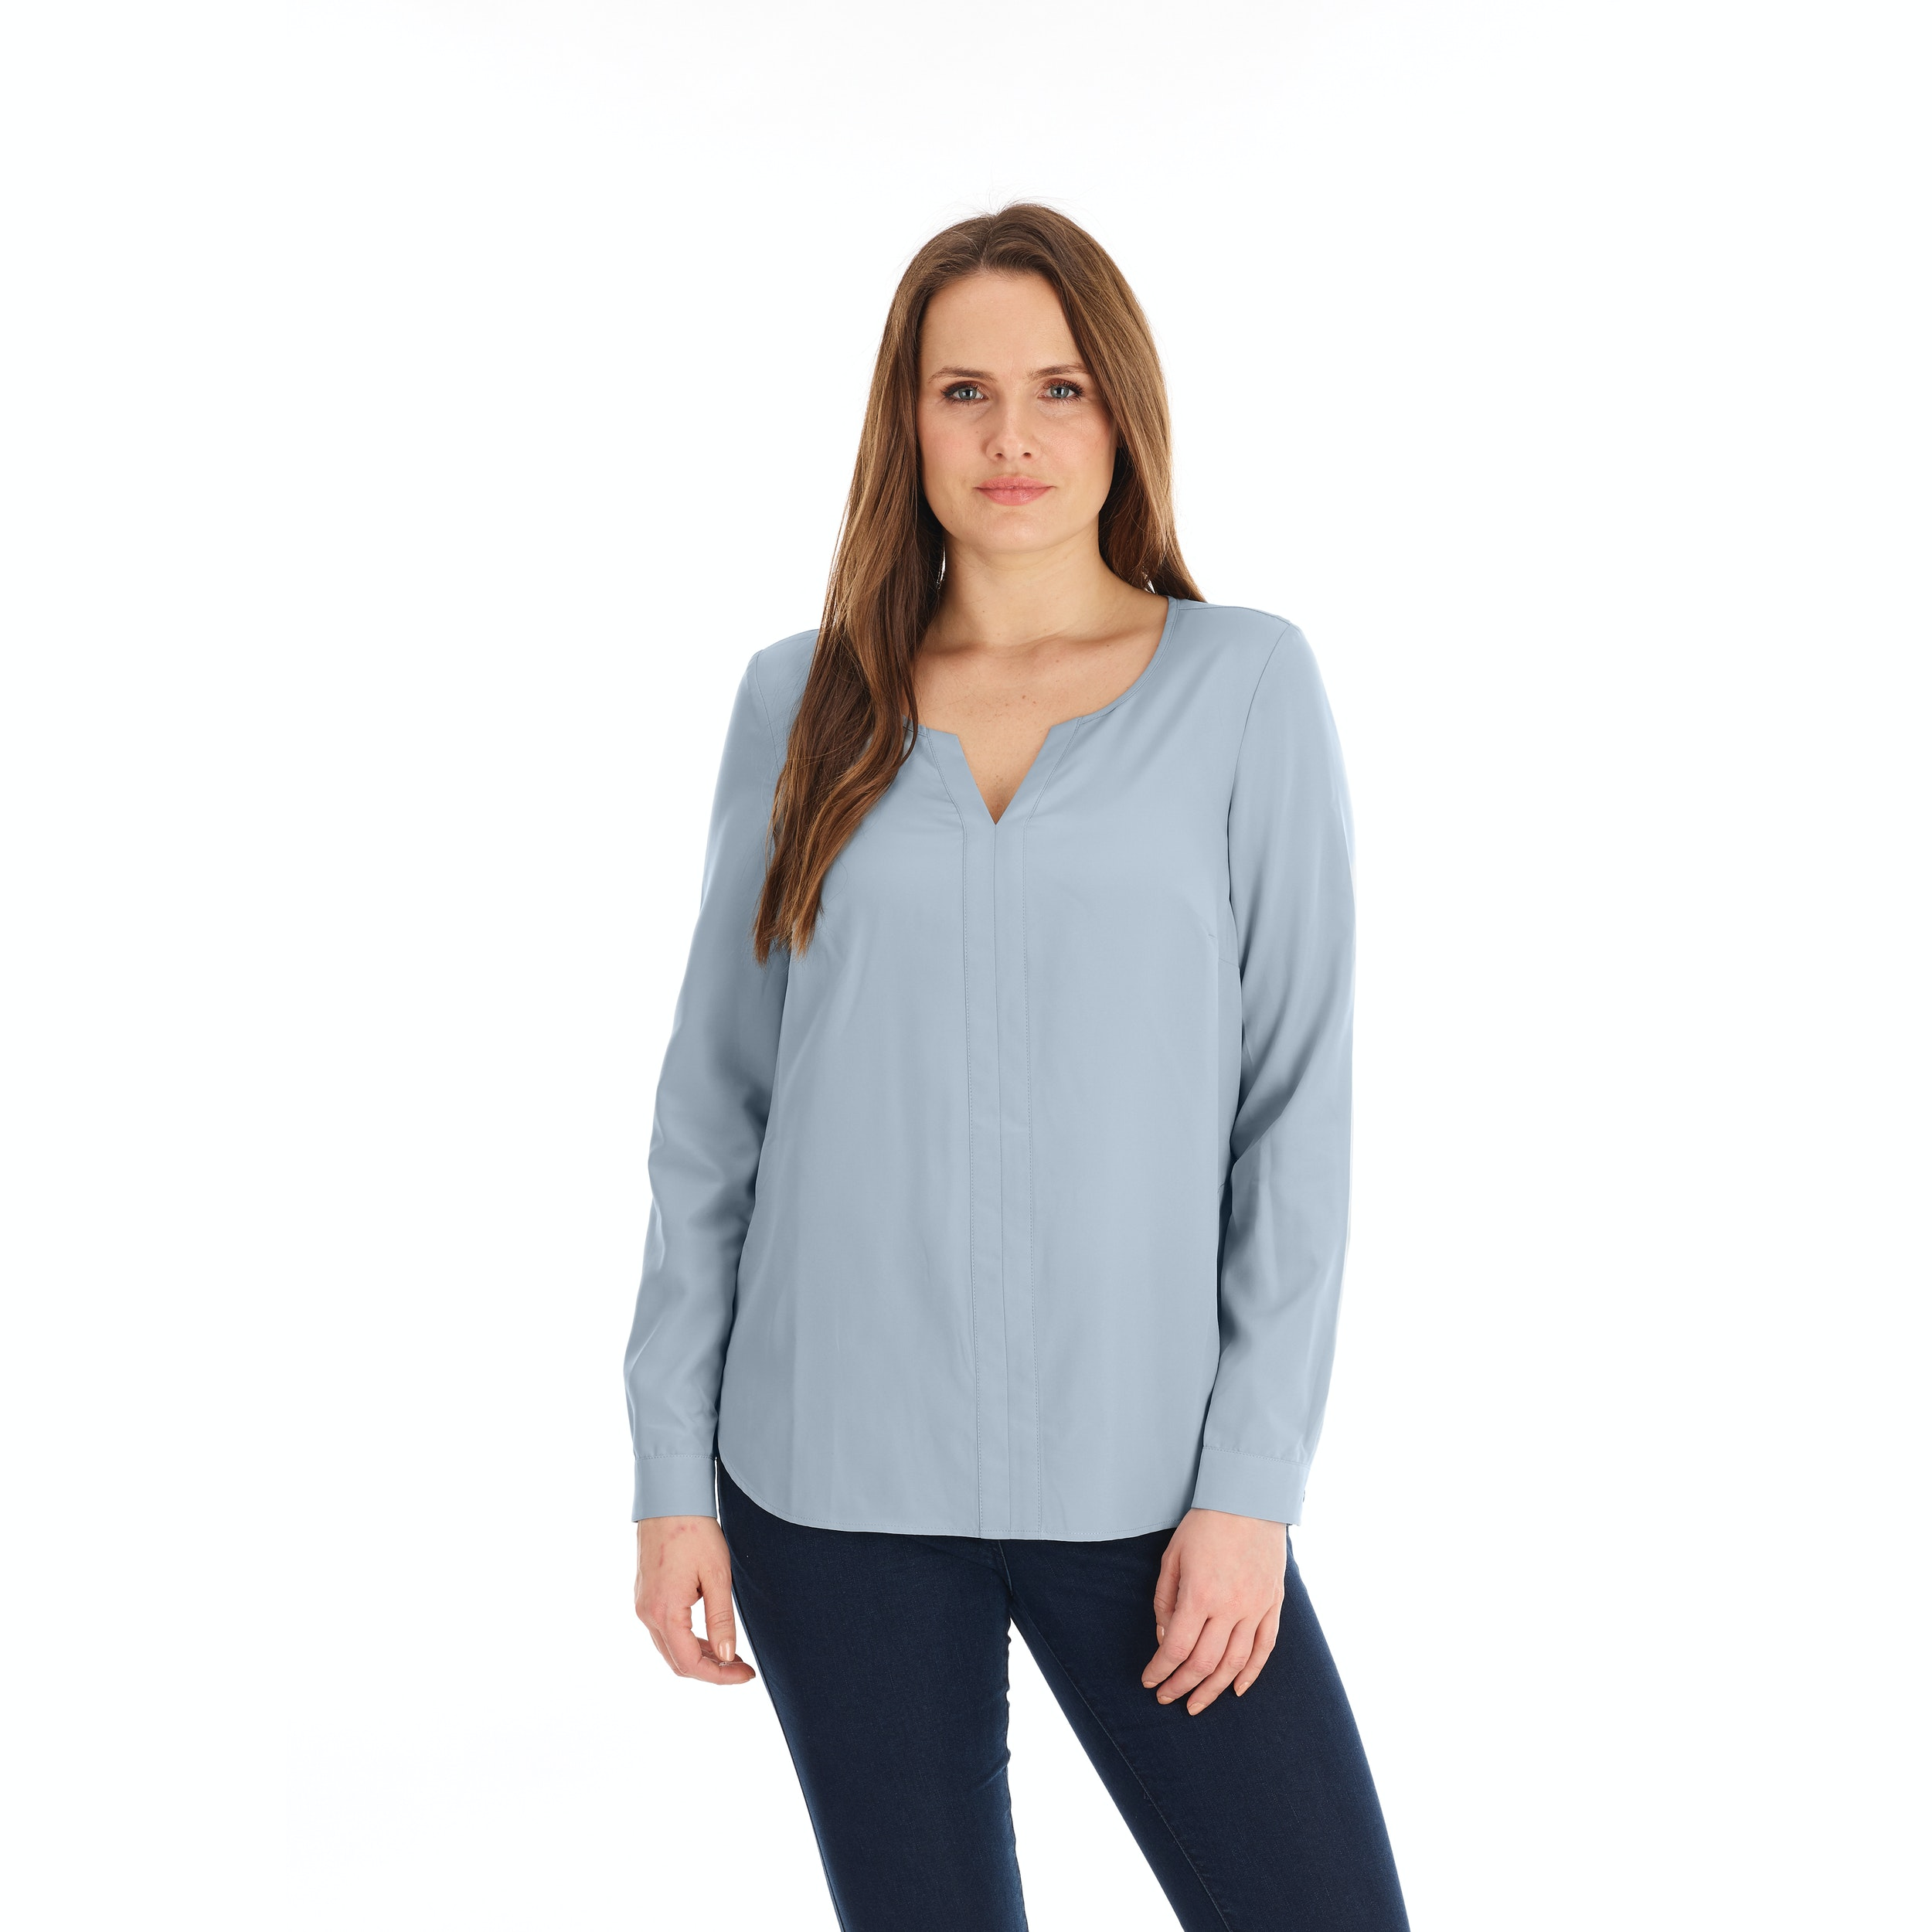 1dc75c4893b Women's Tian Shirt - Insect Shield offer available - click here ...